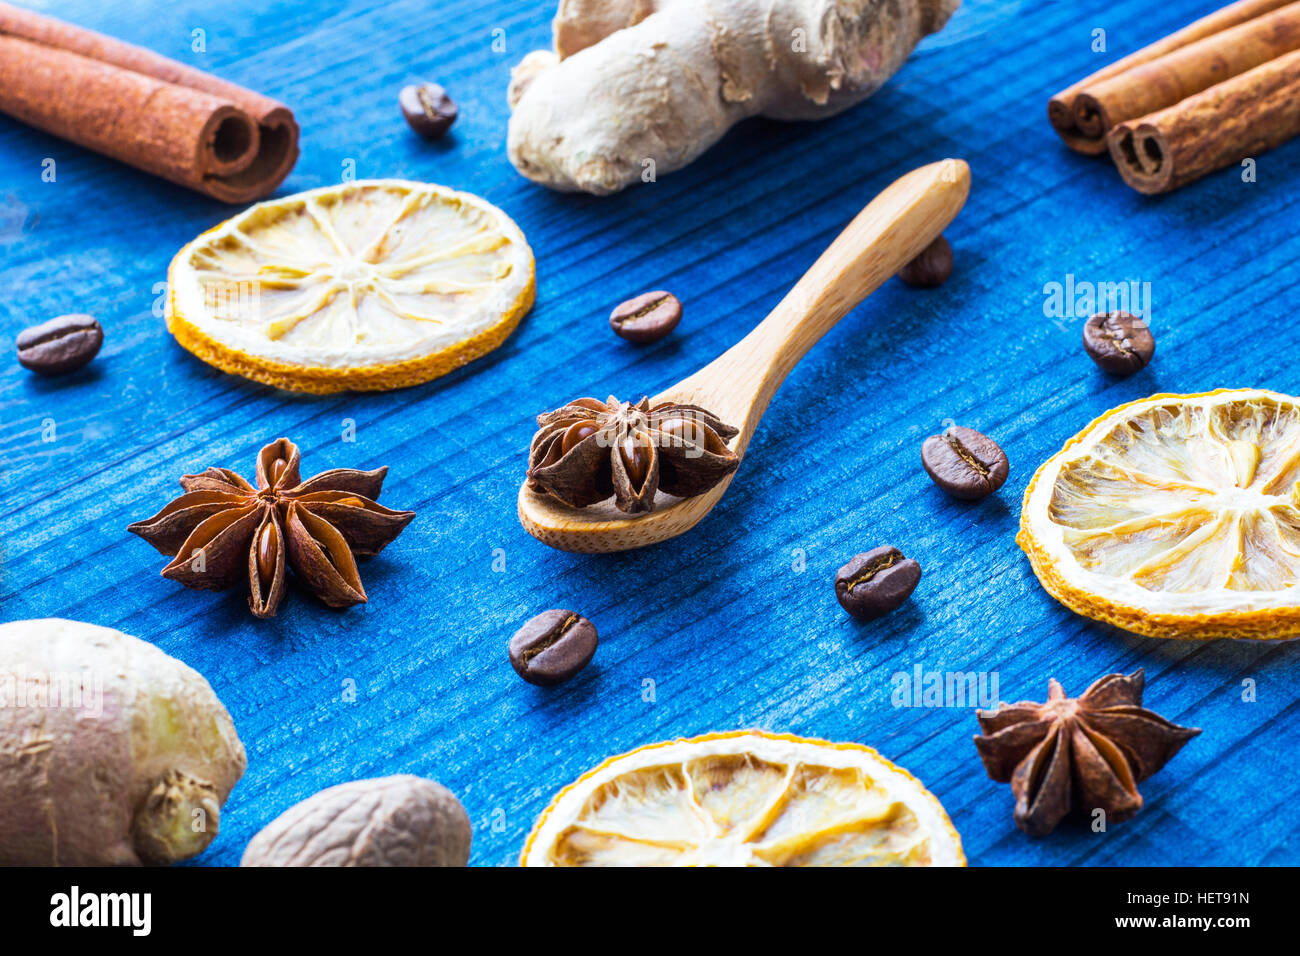 Spices on blue wooden table Stock Photo